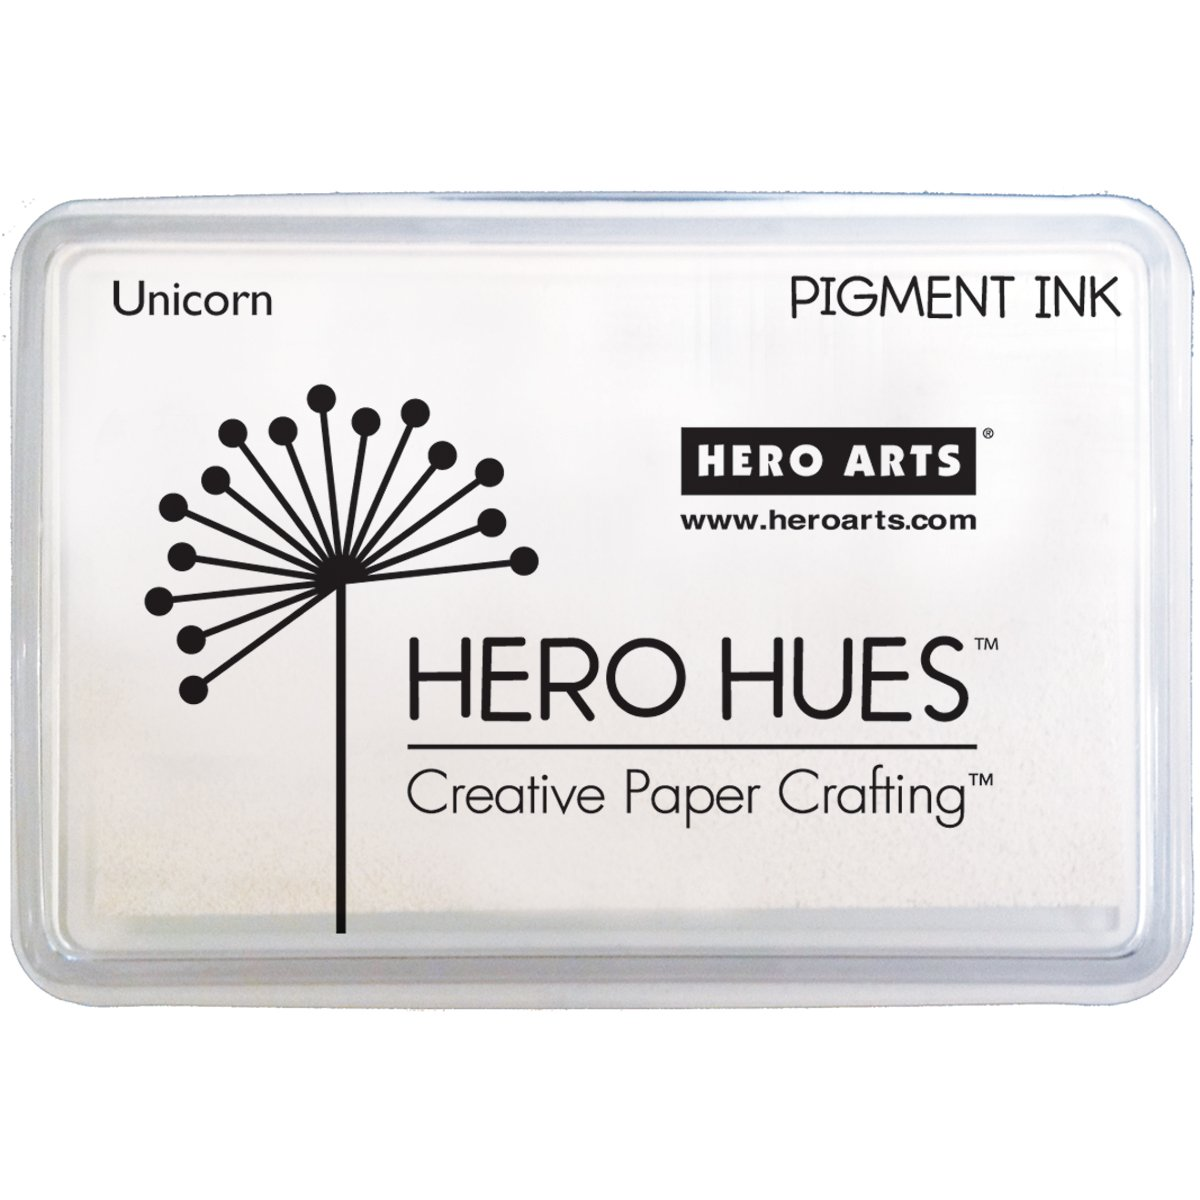 Hero Arts AF249 Unicorn Pigment Ink Pad Inc.